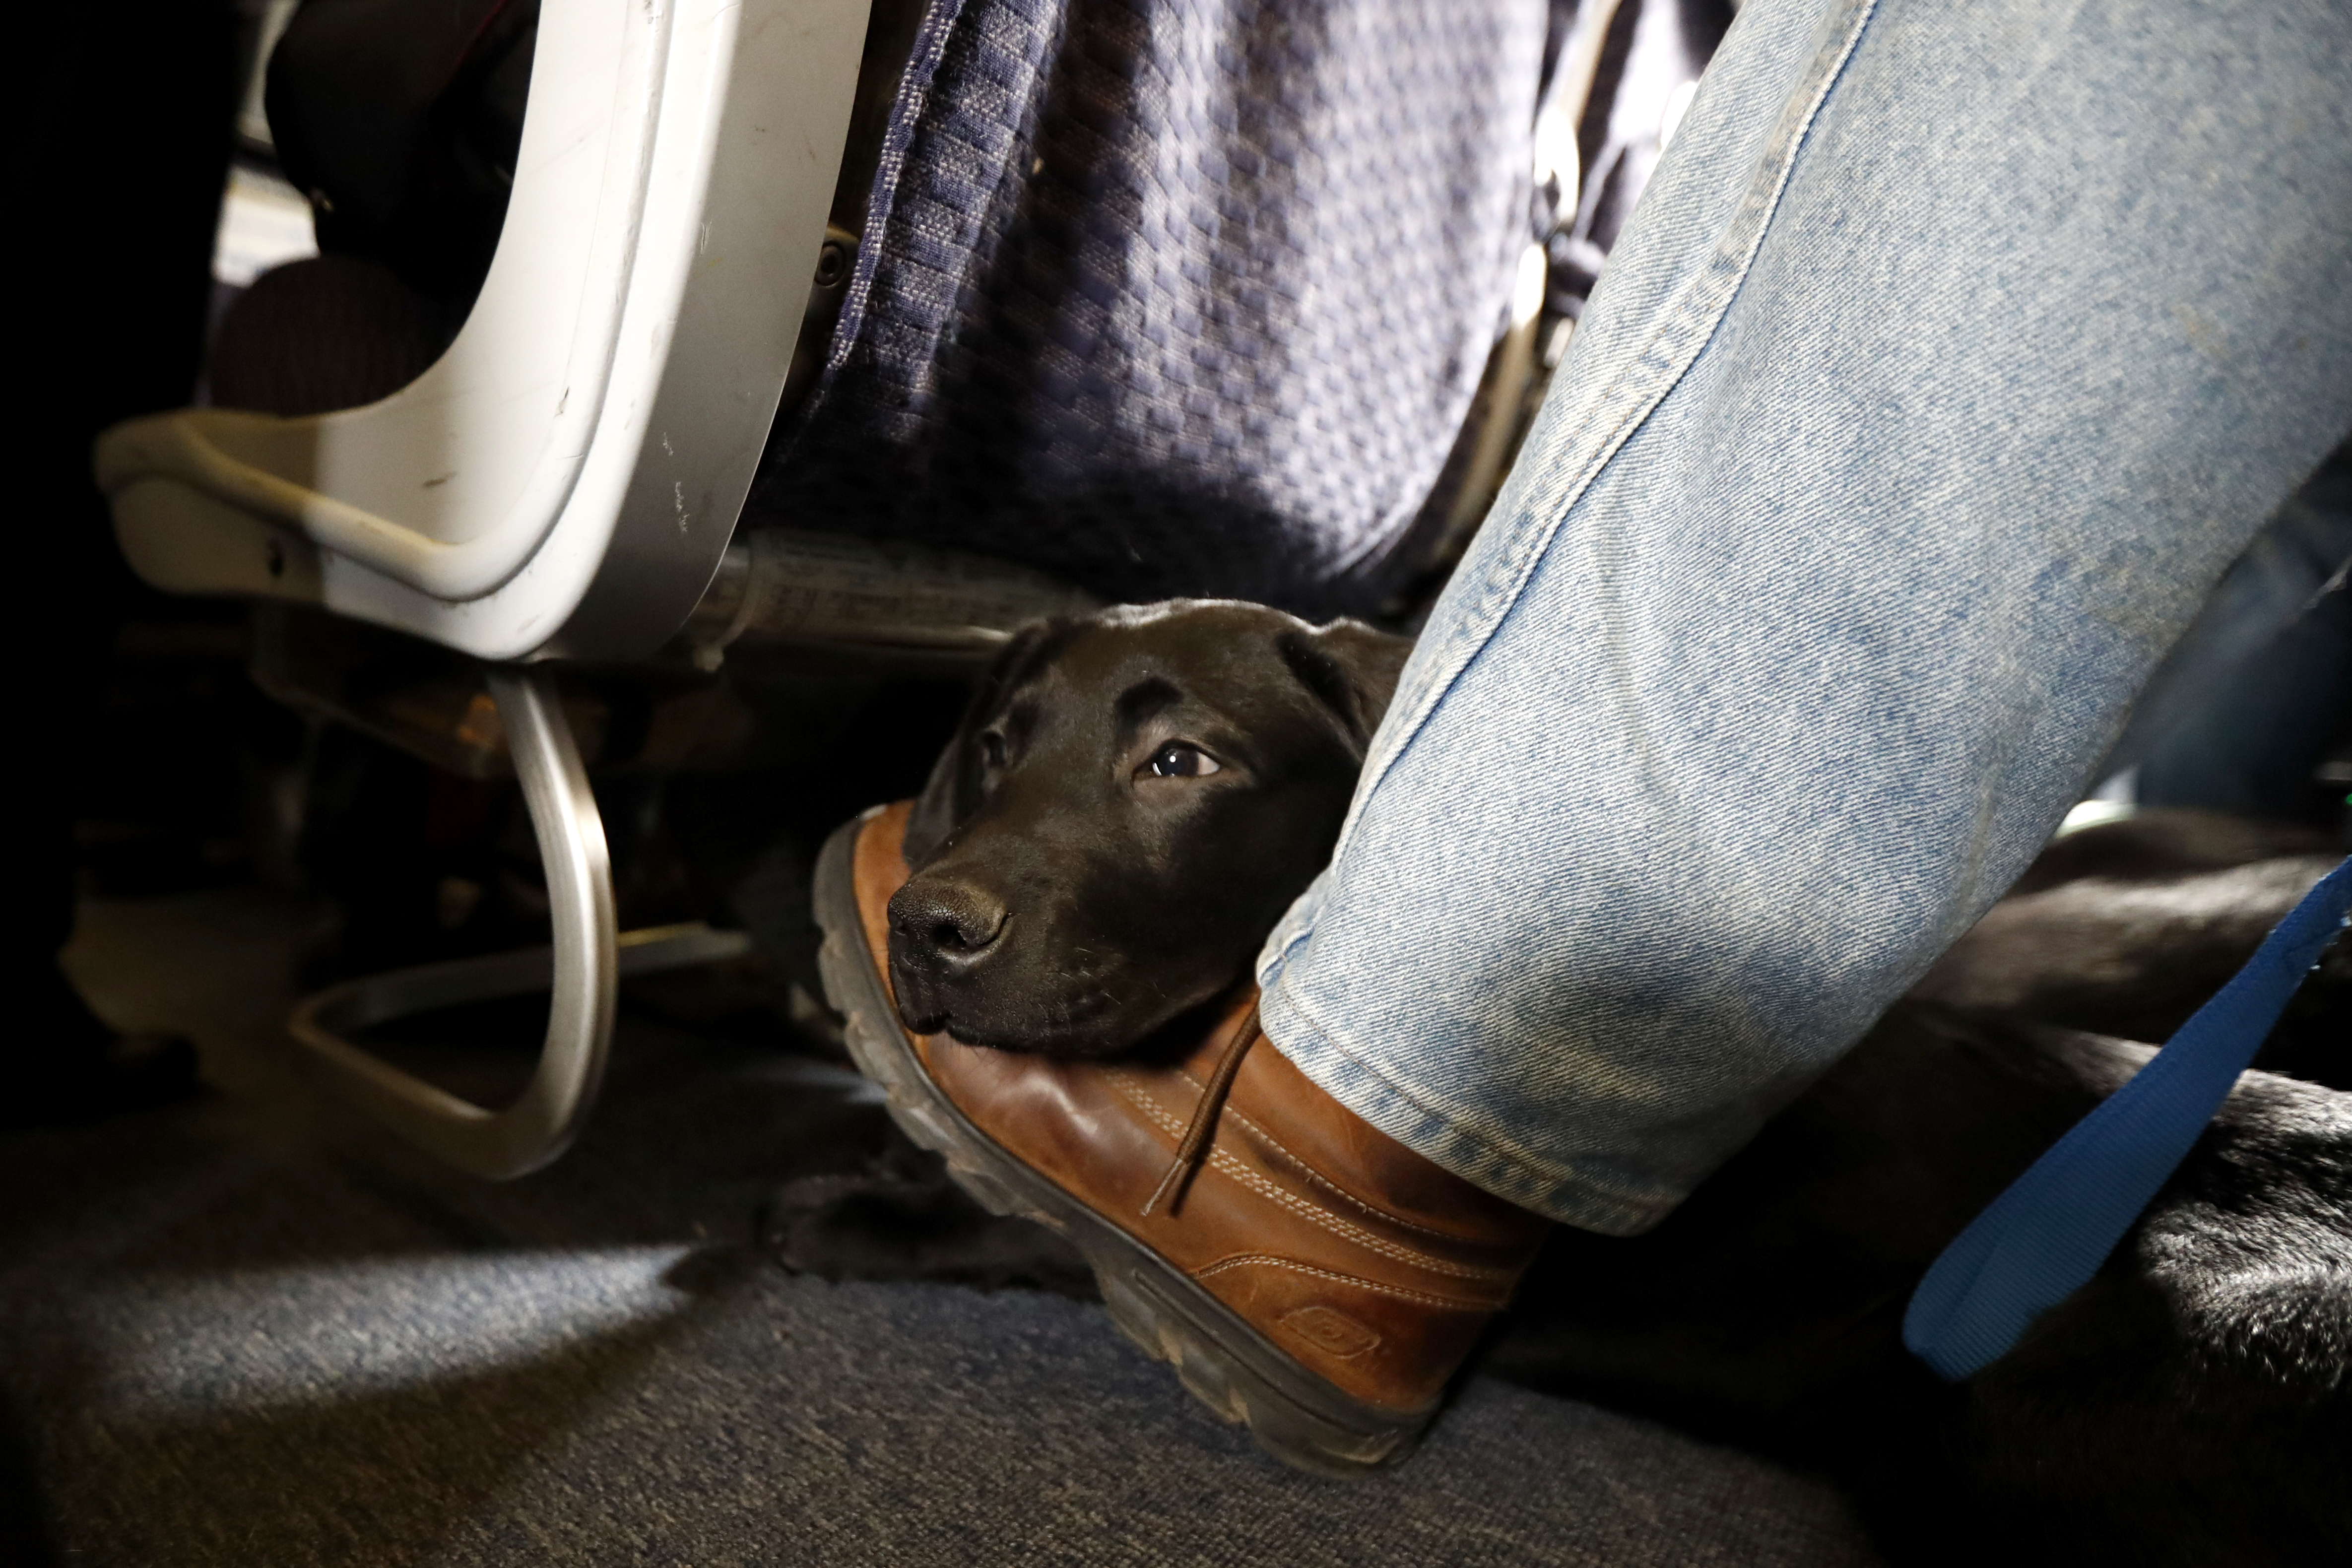 The world outraged the killing of a puppy that interfered with airplanes at the airport